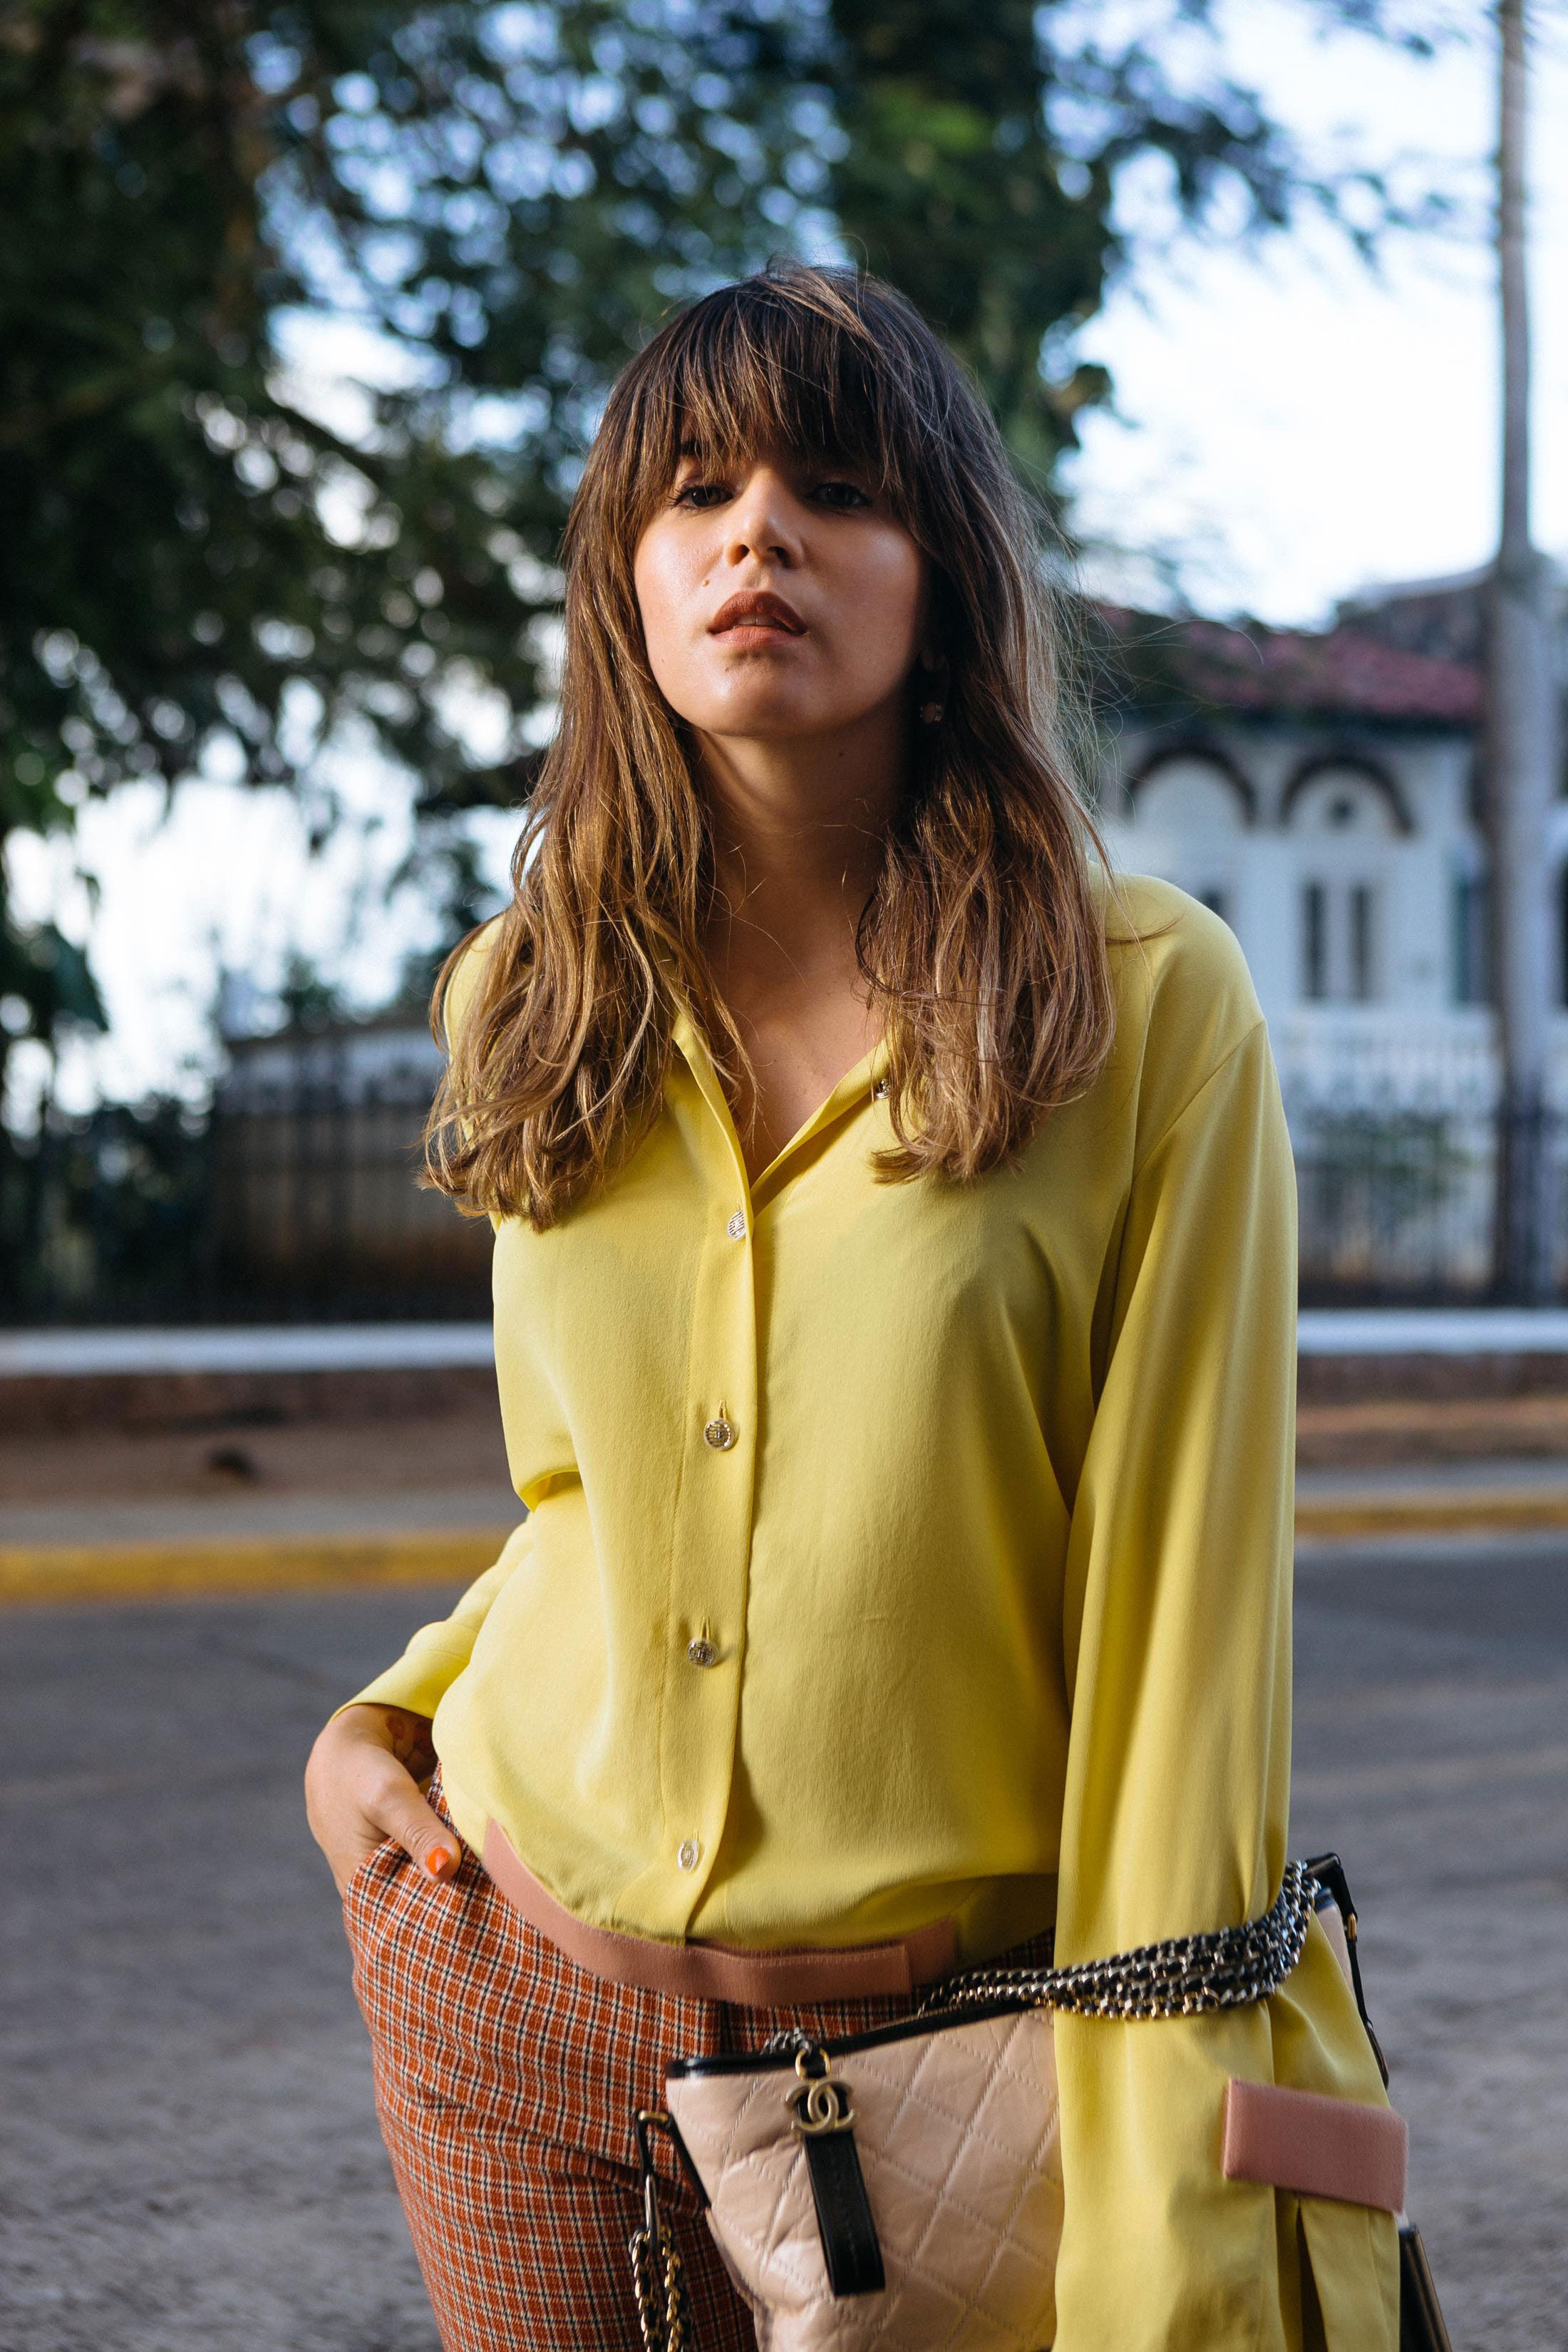 Lou look get the doillon for less